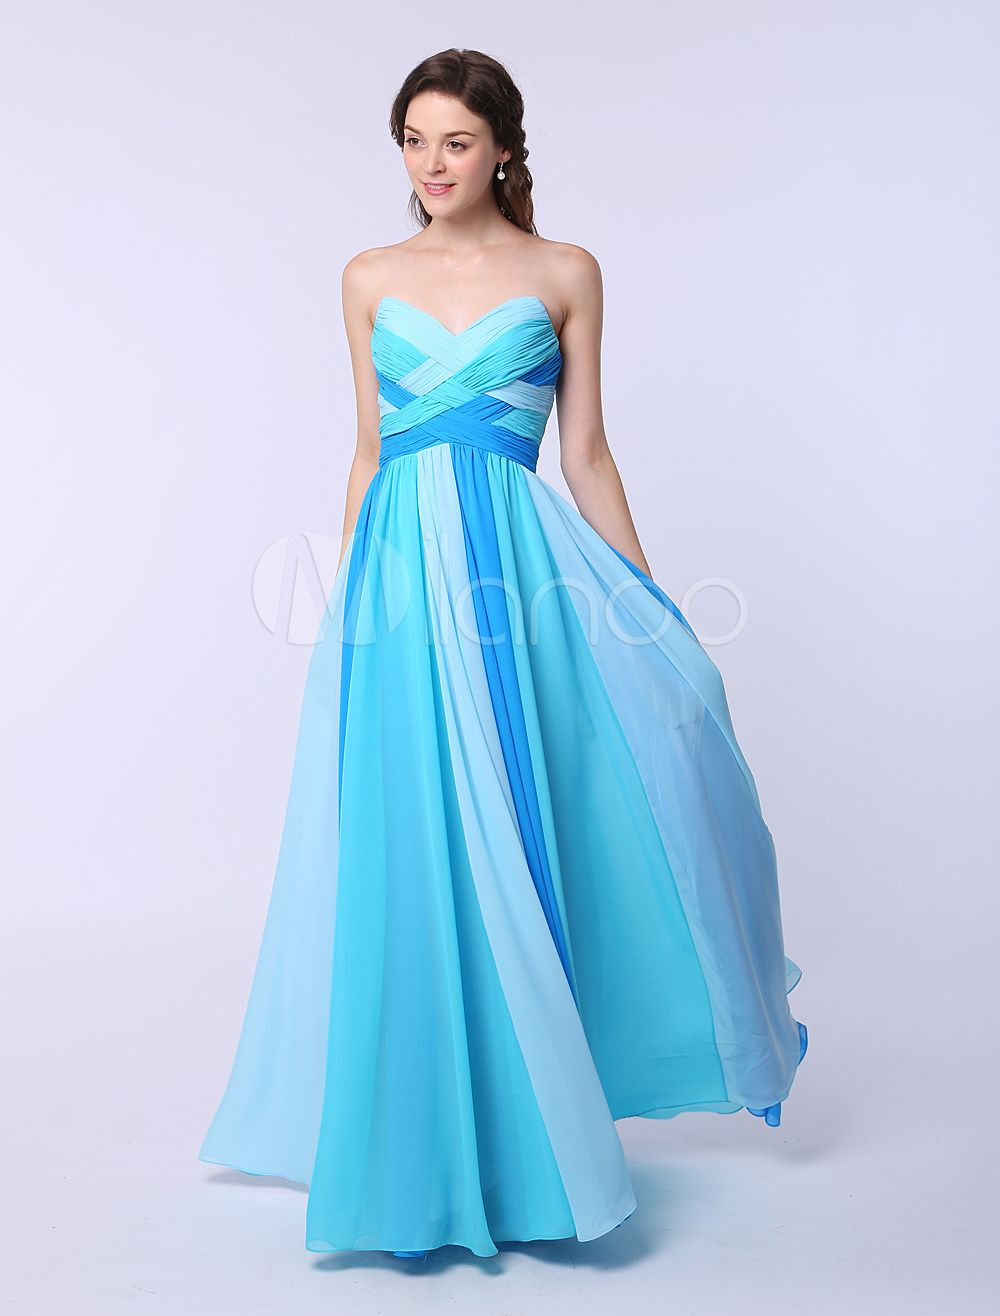 Multicolor A-line Chiffon Prom Dress with Sweetheart Neck Criss ...